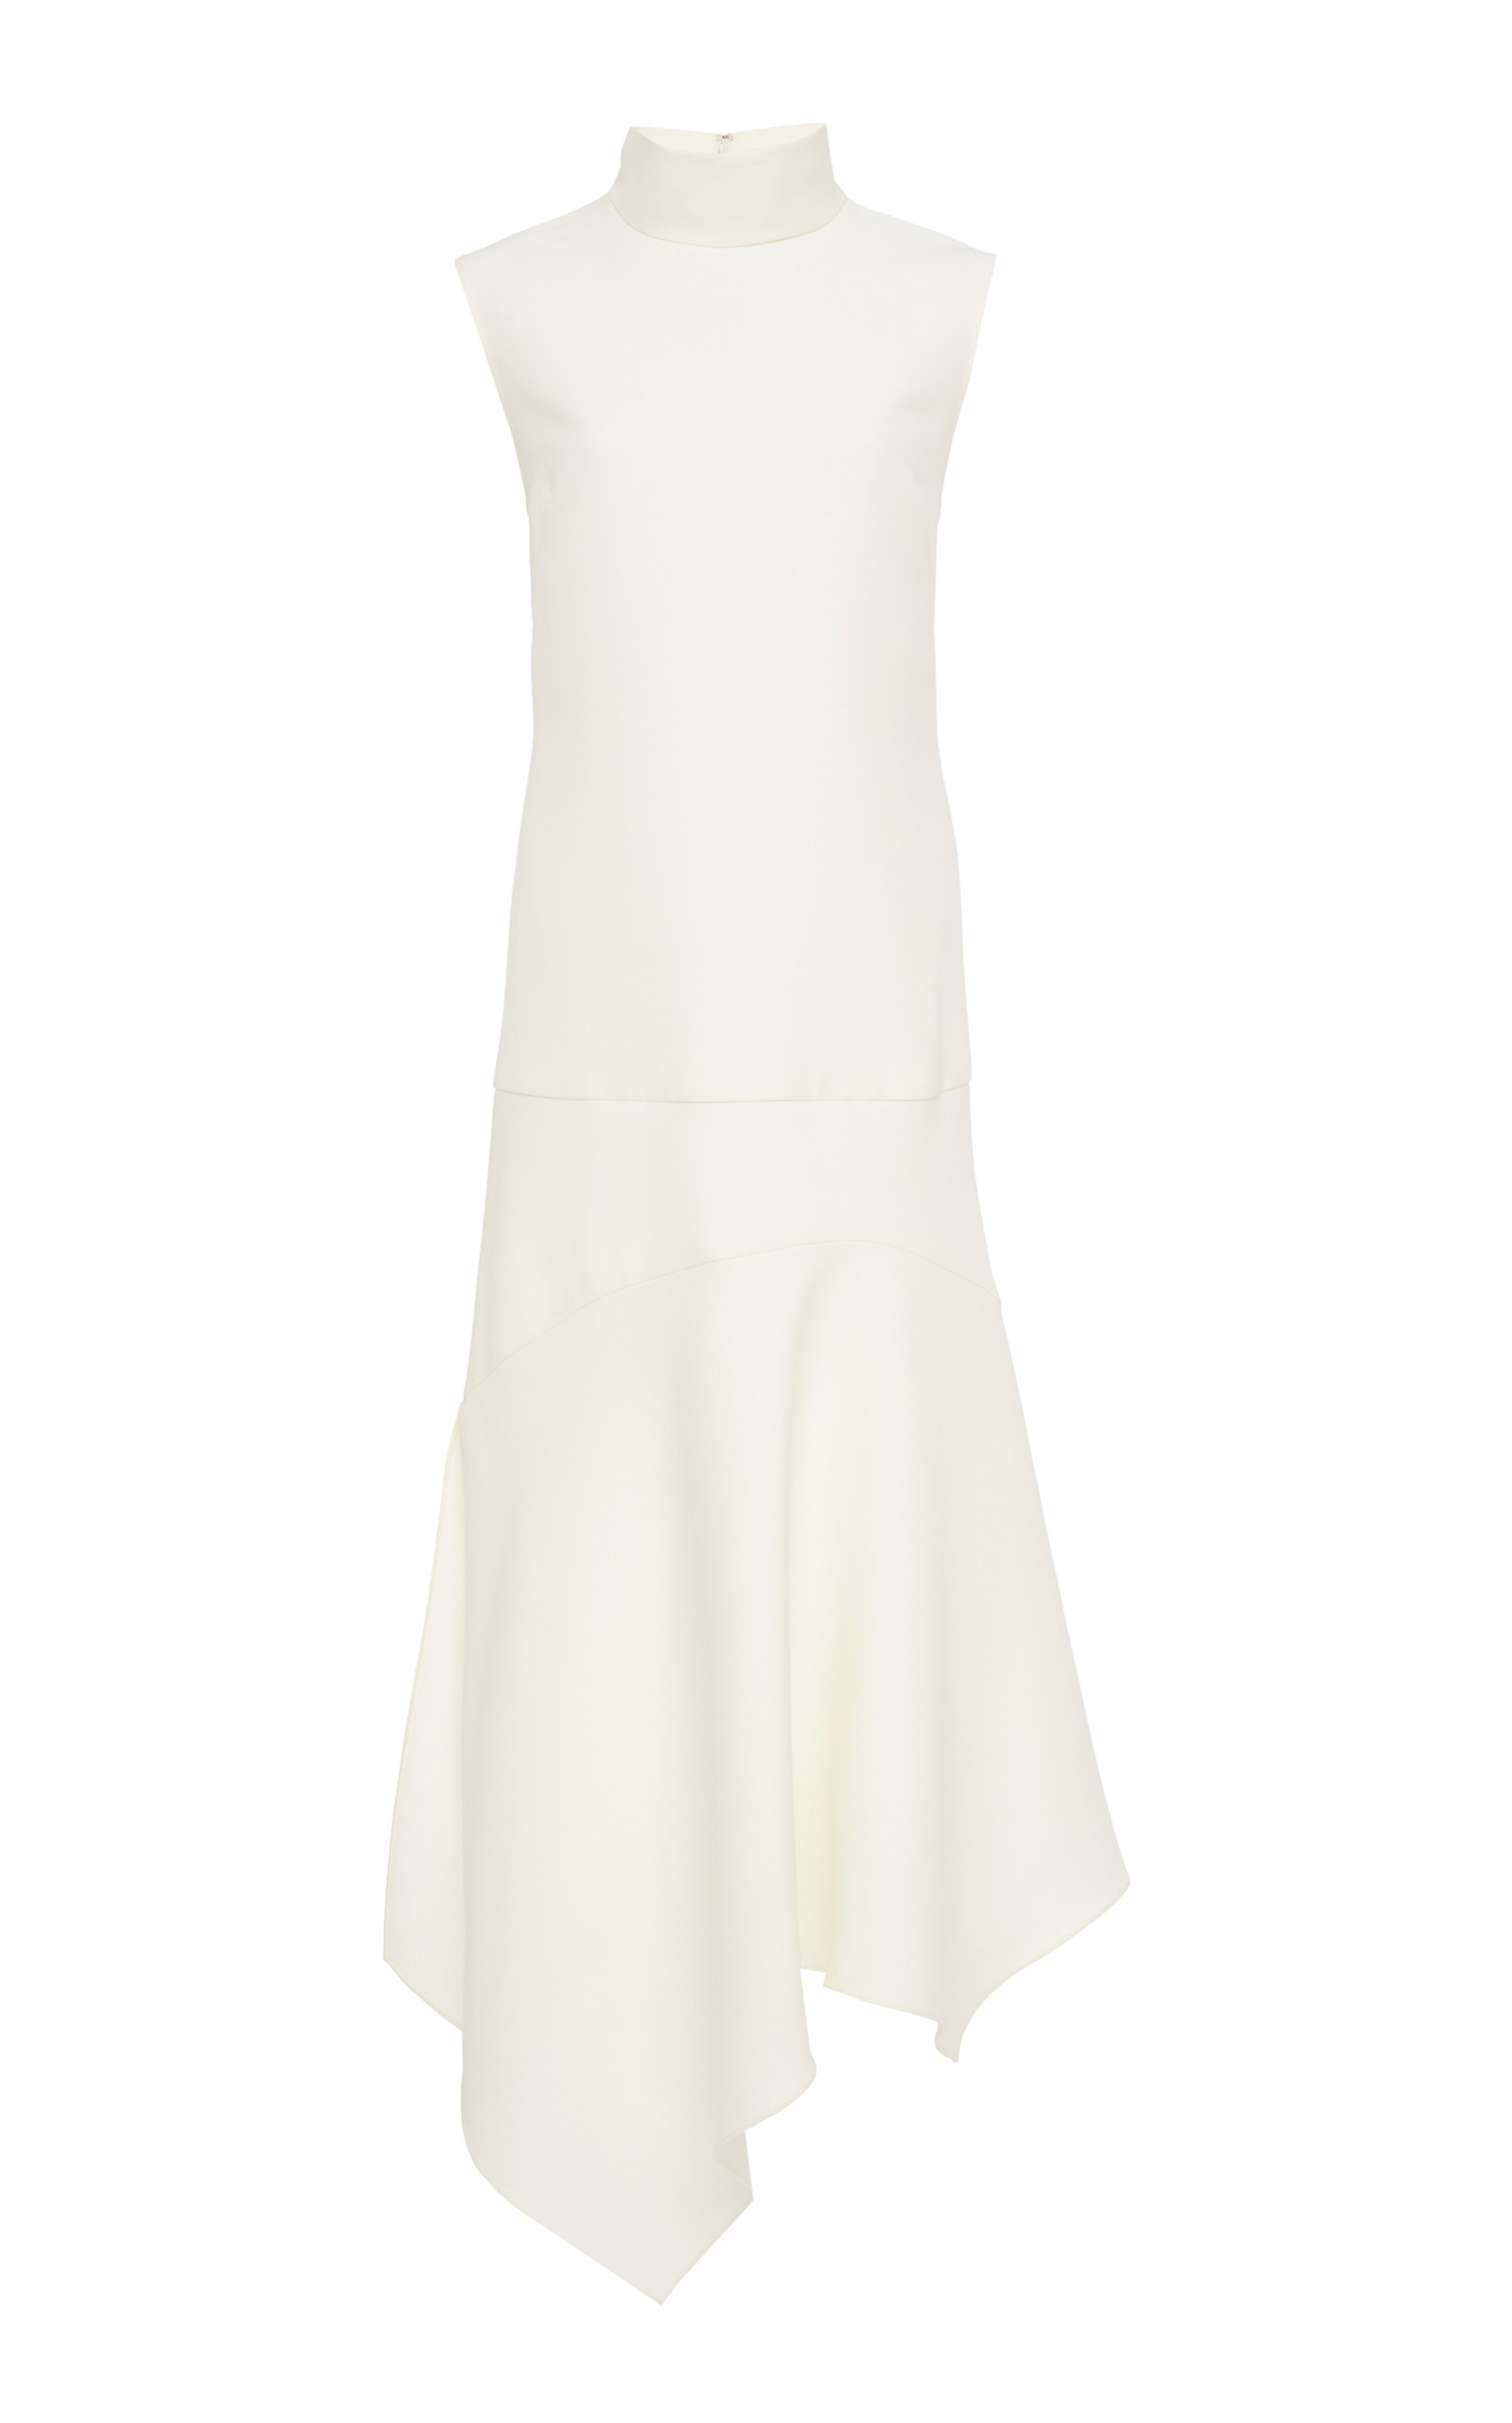 YEON M'O Exclusive Nyx Asymmetric Turtleneck Wool-Blend Midi Dress in White